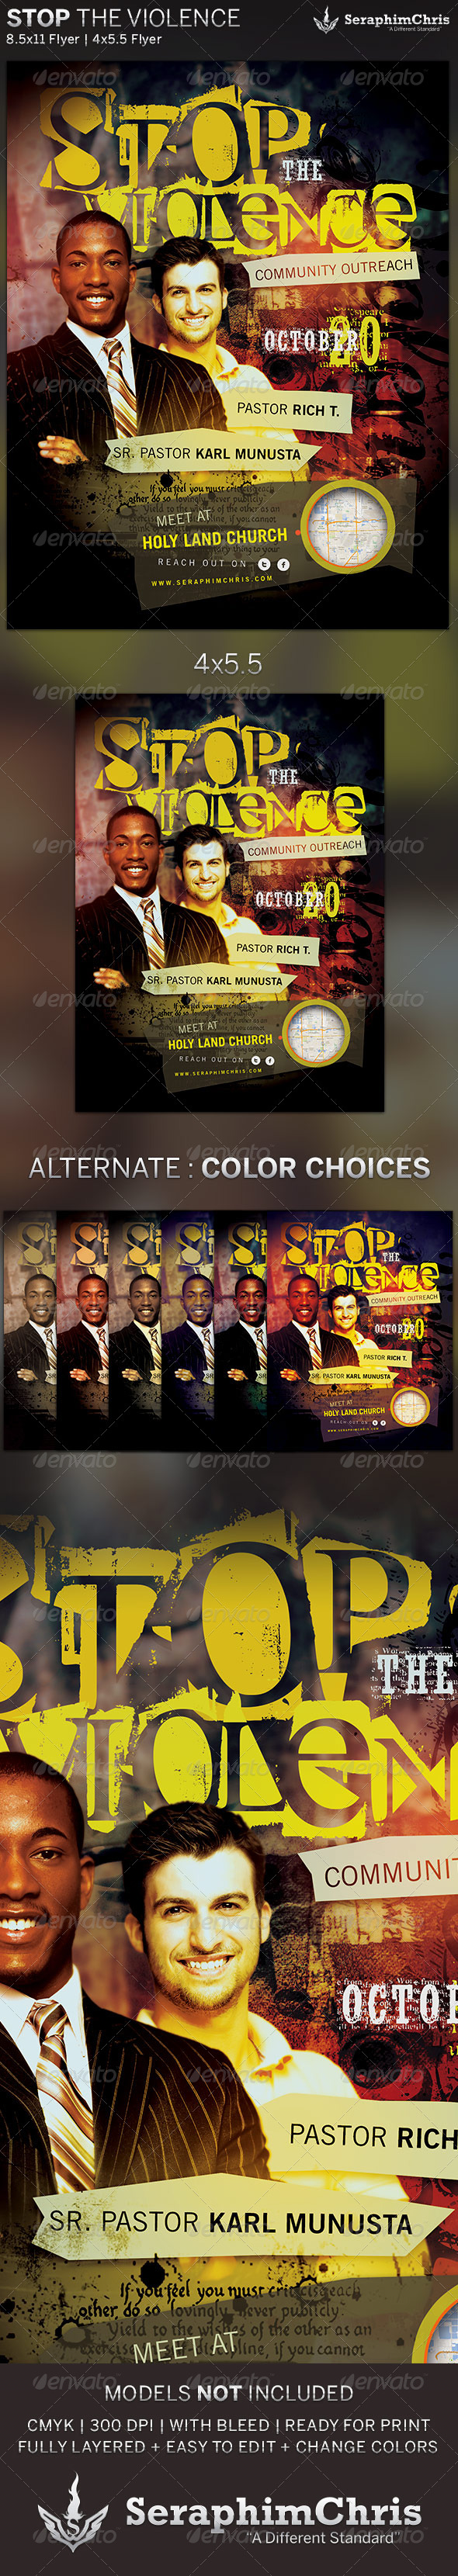 GraphicRiver Stop the Violence Church Flyer Template 5463975